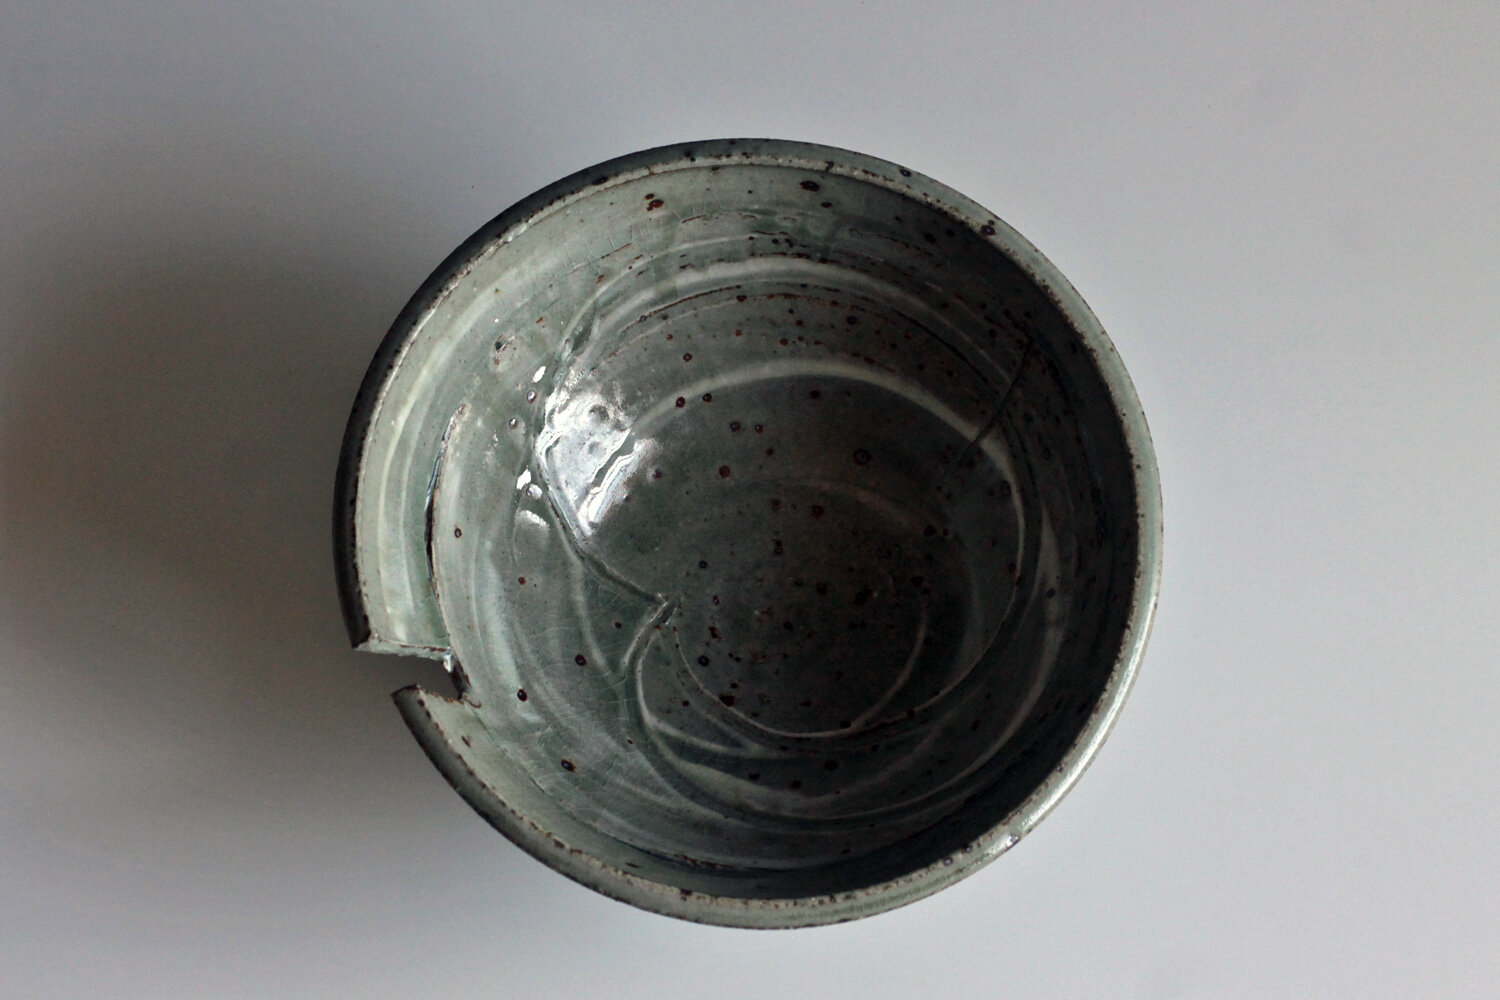 here is the caption - new from the kiln this month